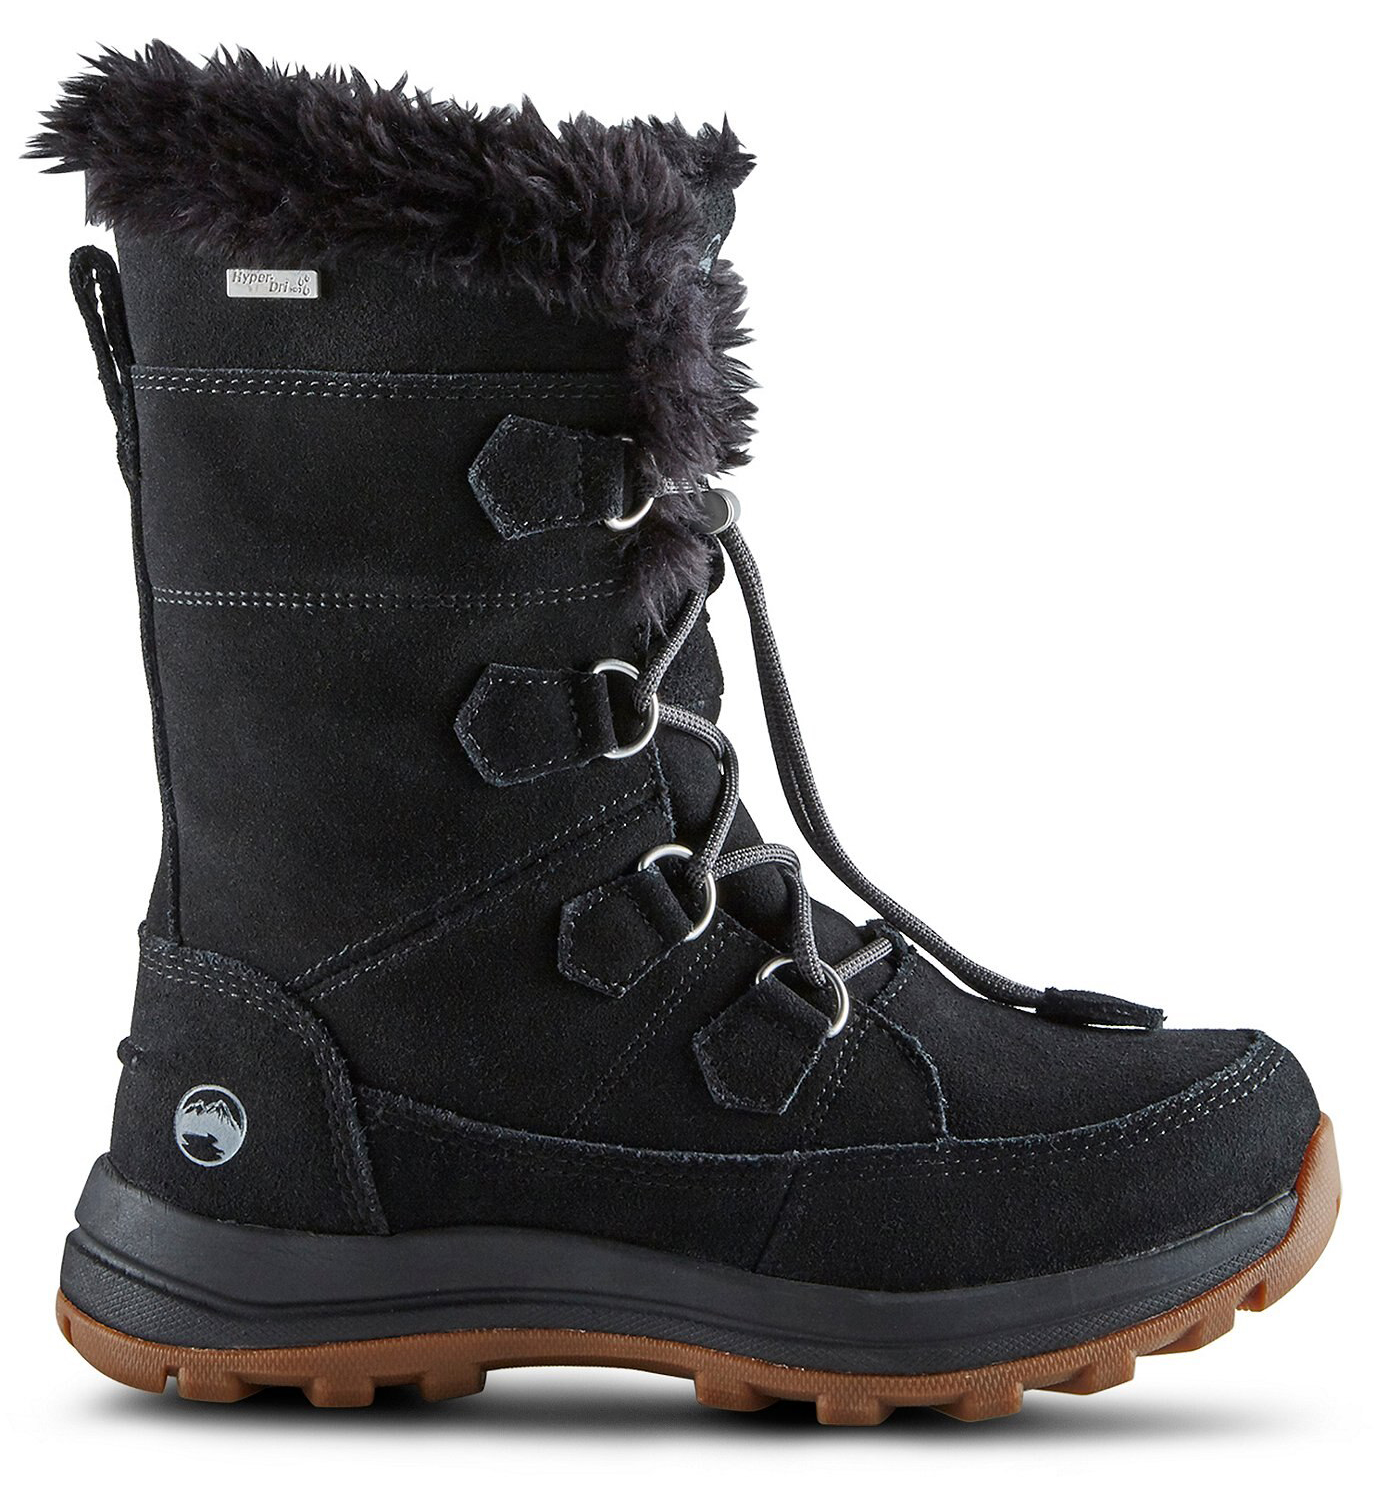 Best snow and ice boots for women - Windriver Women's Ice Queen ICEFX Mid Winter Boots